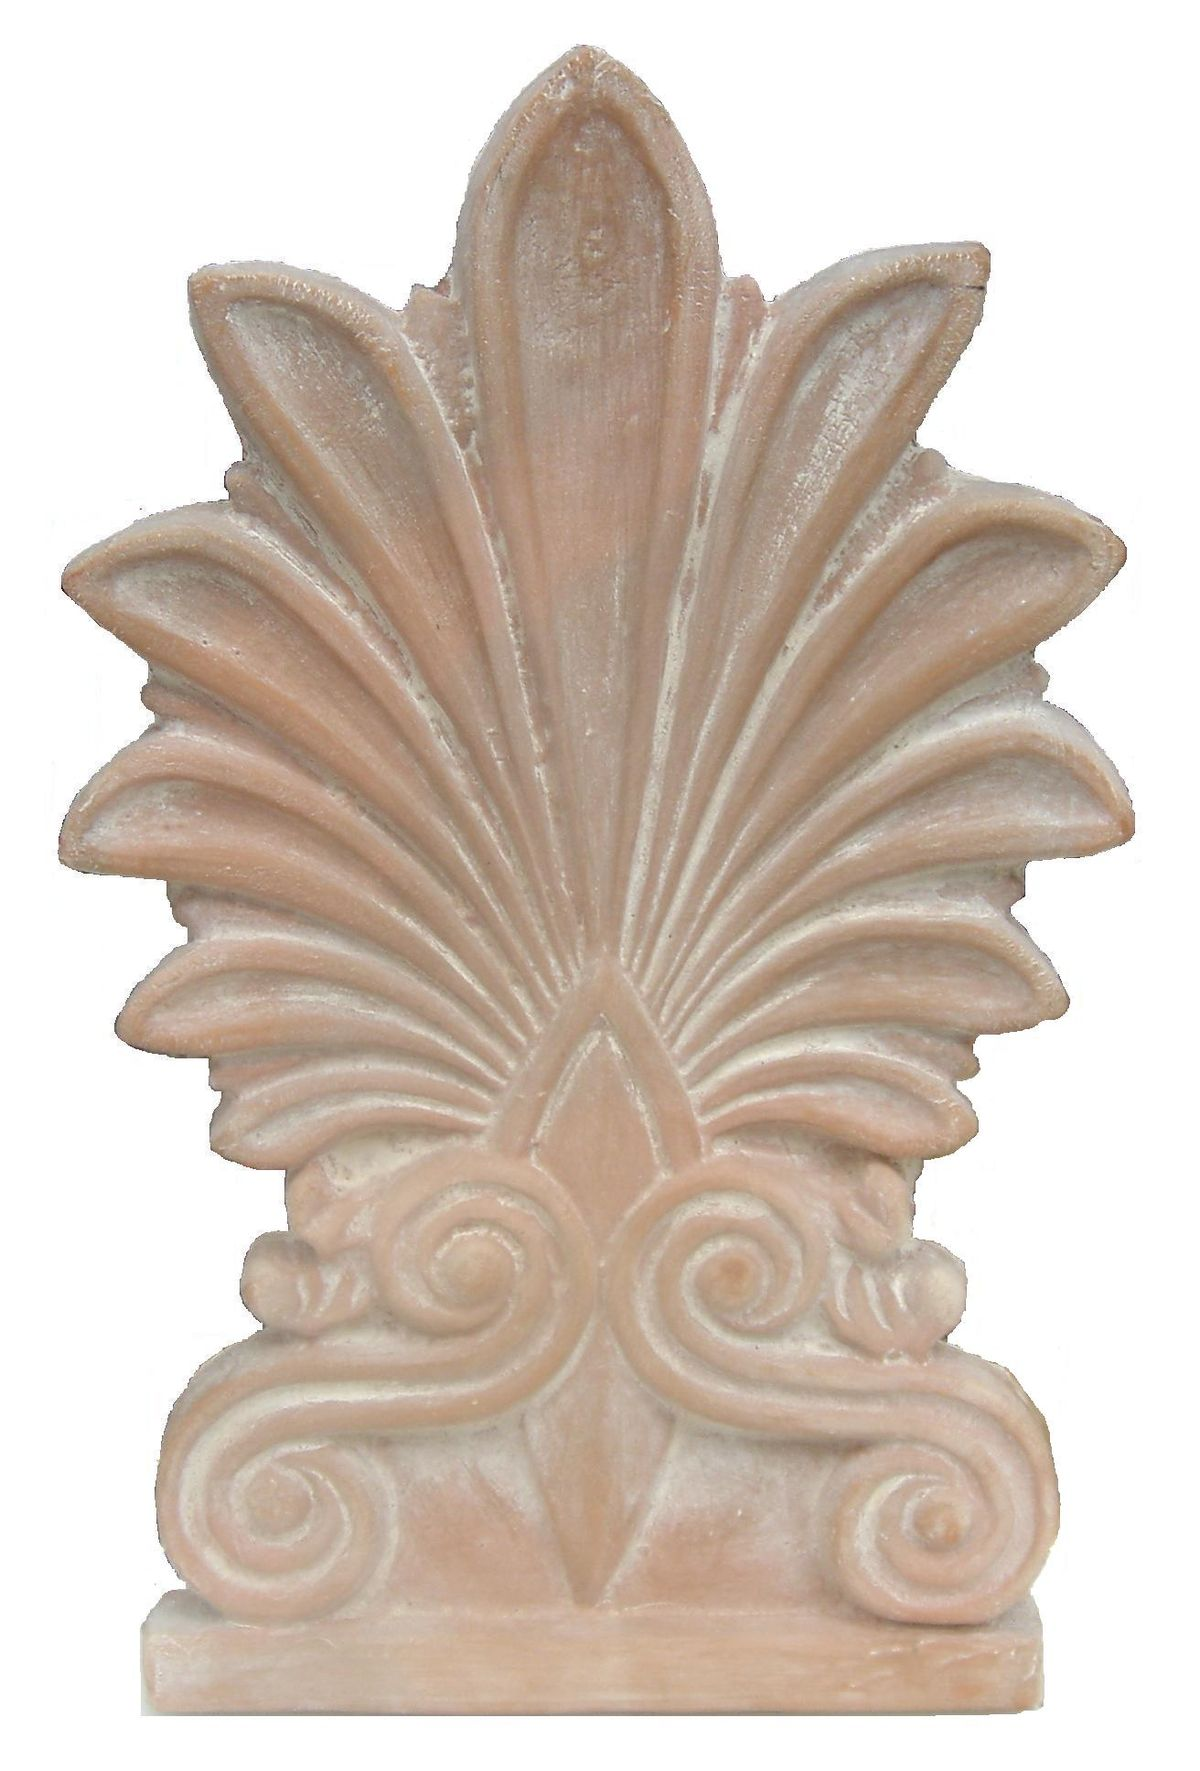 Palmette wikipedia for Acanthus leaf decoration